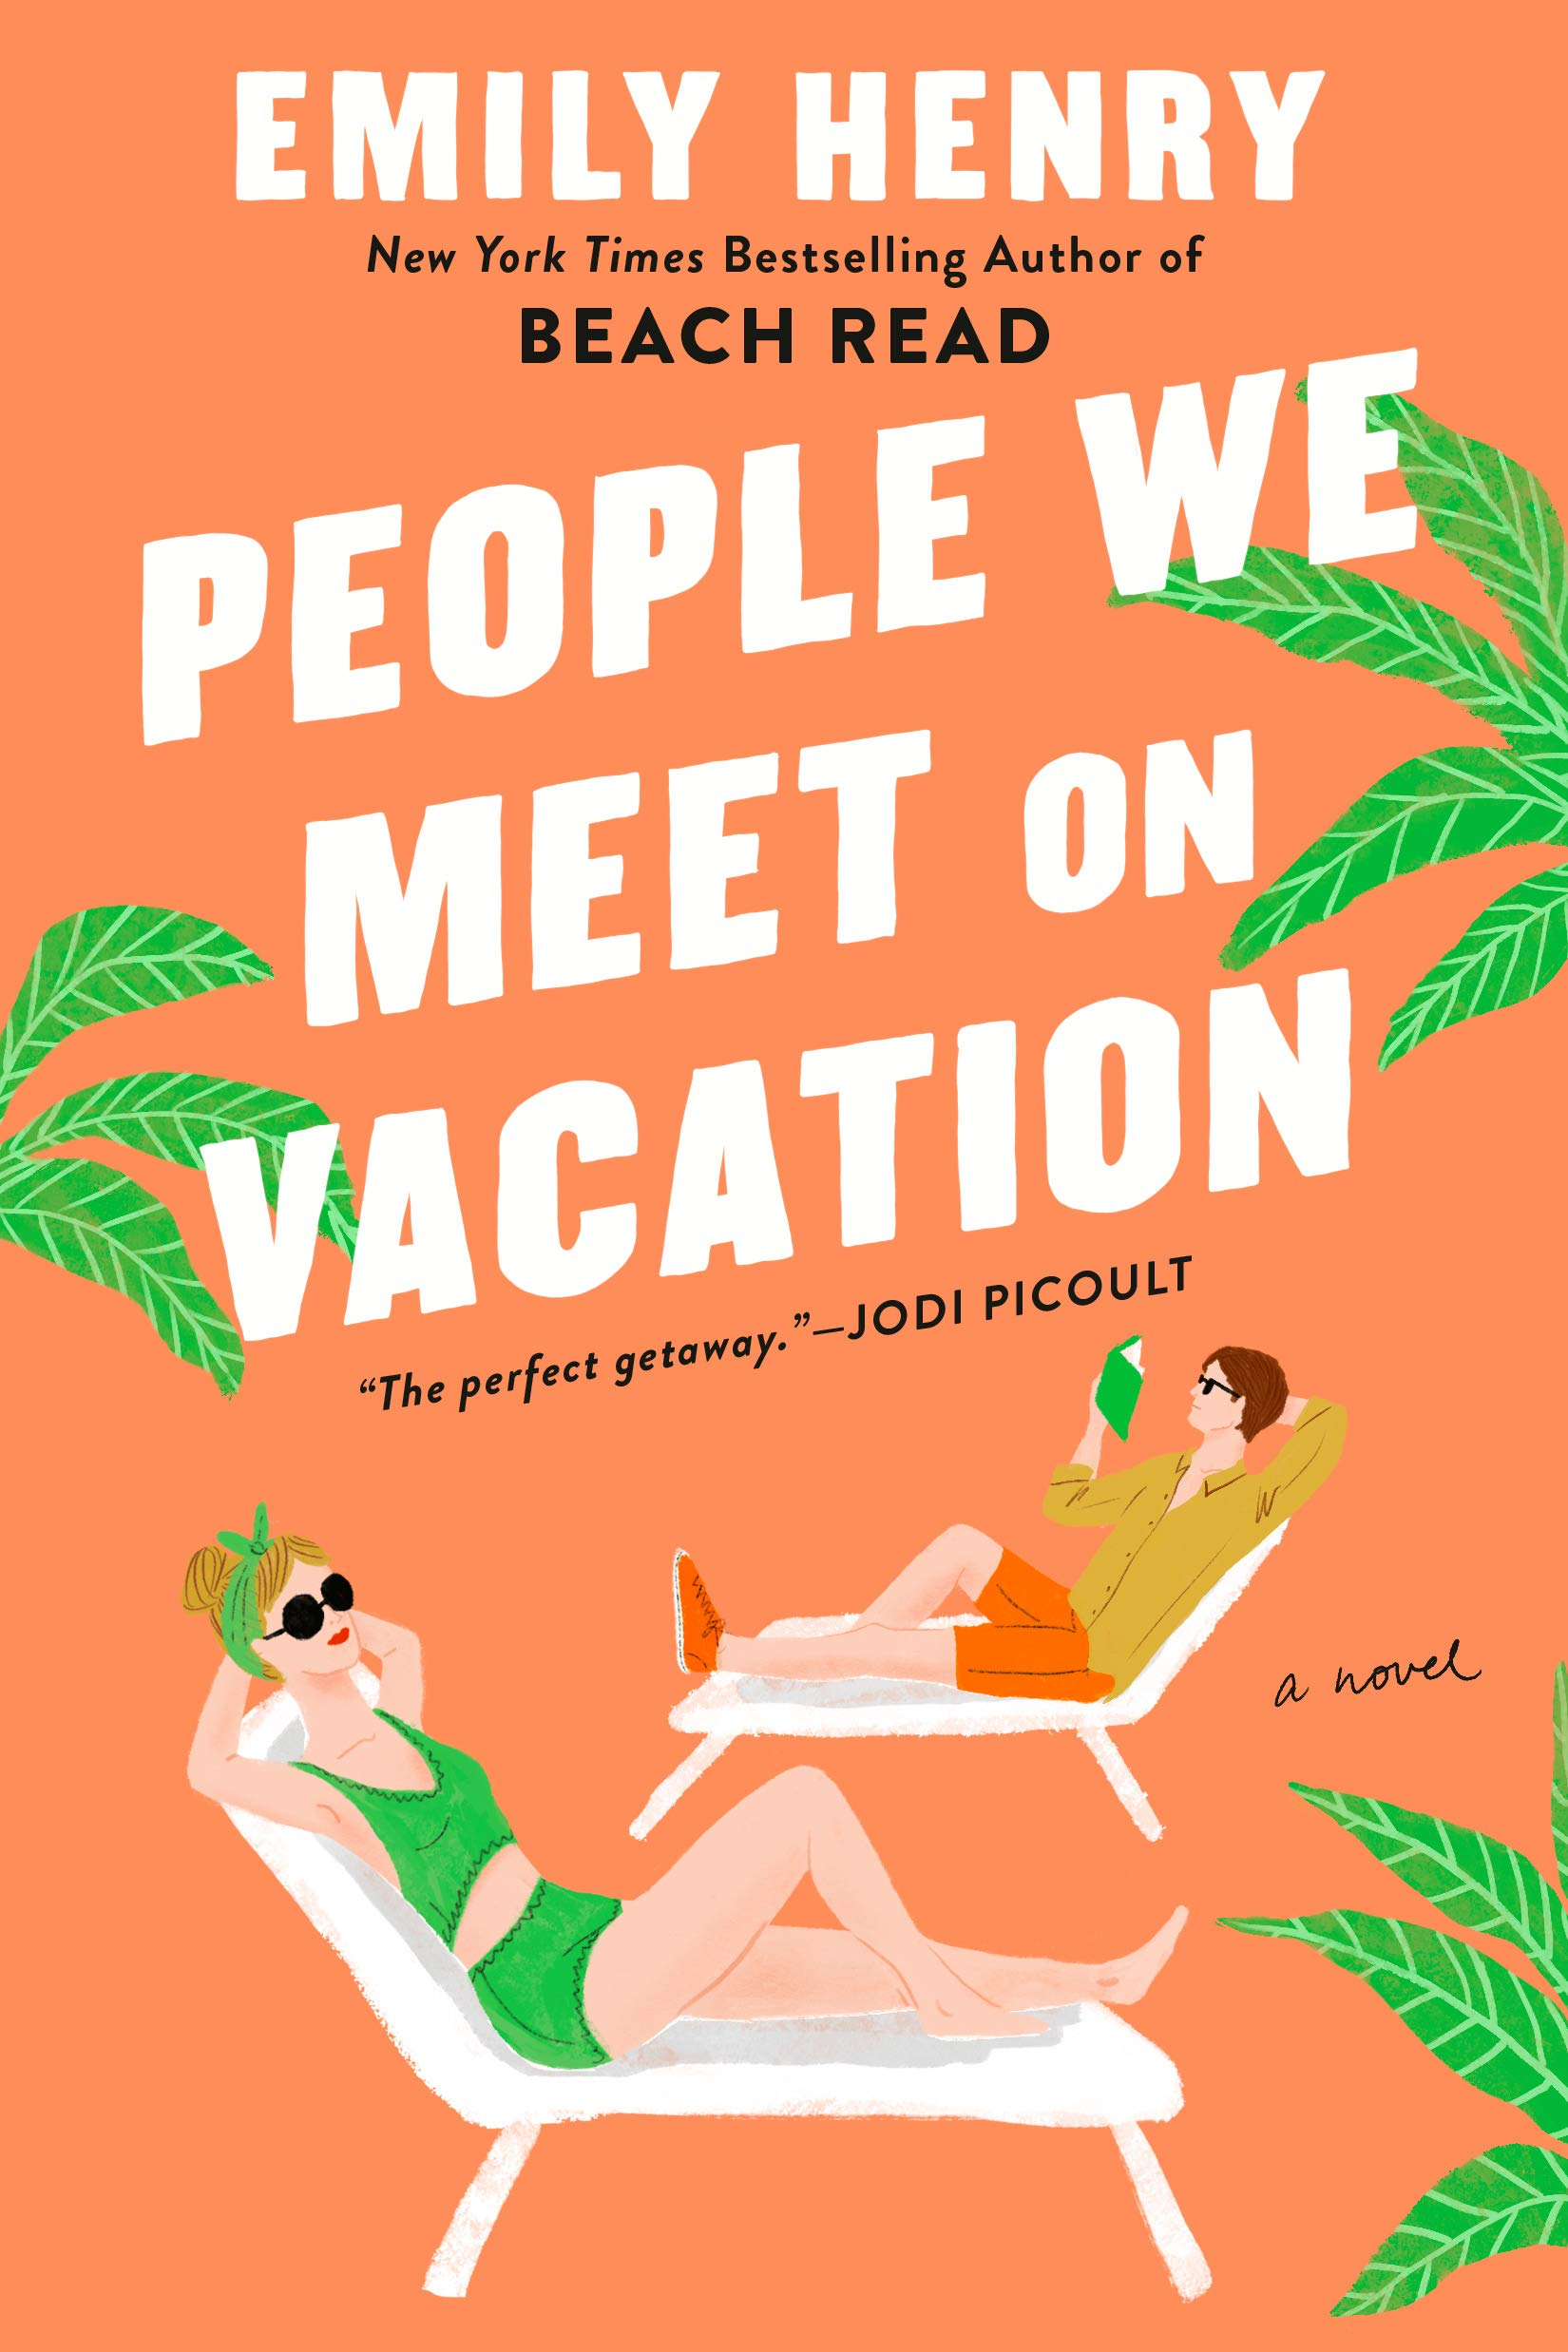 Cover image of People We Meet on Vacation by Emily Henry